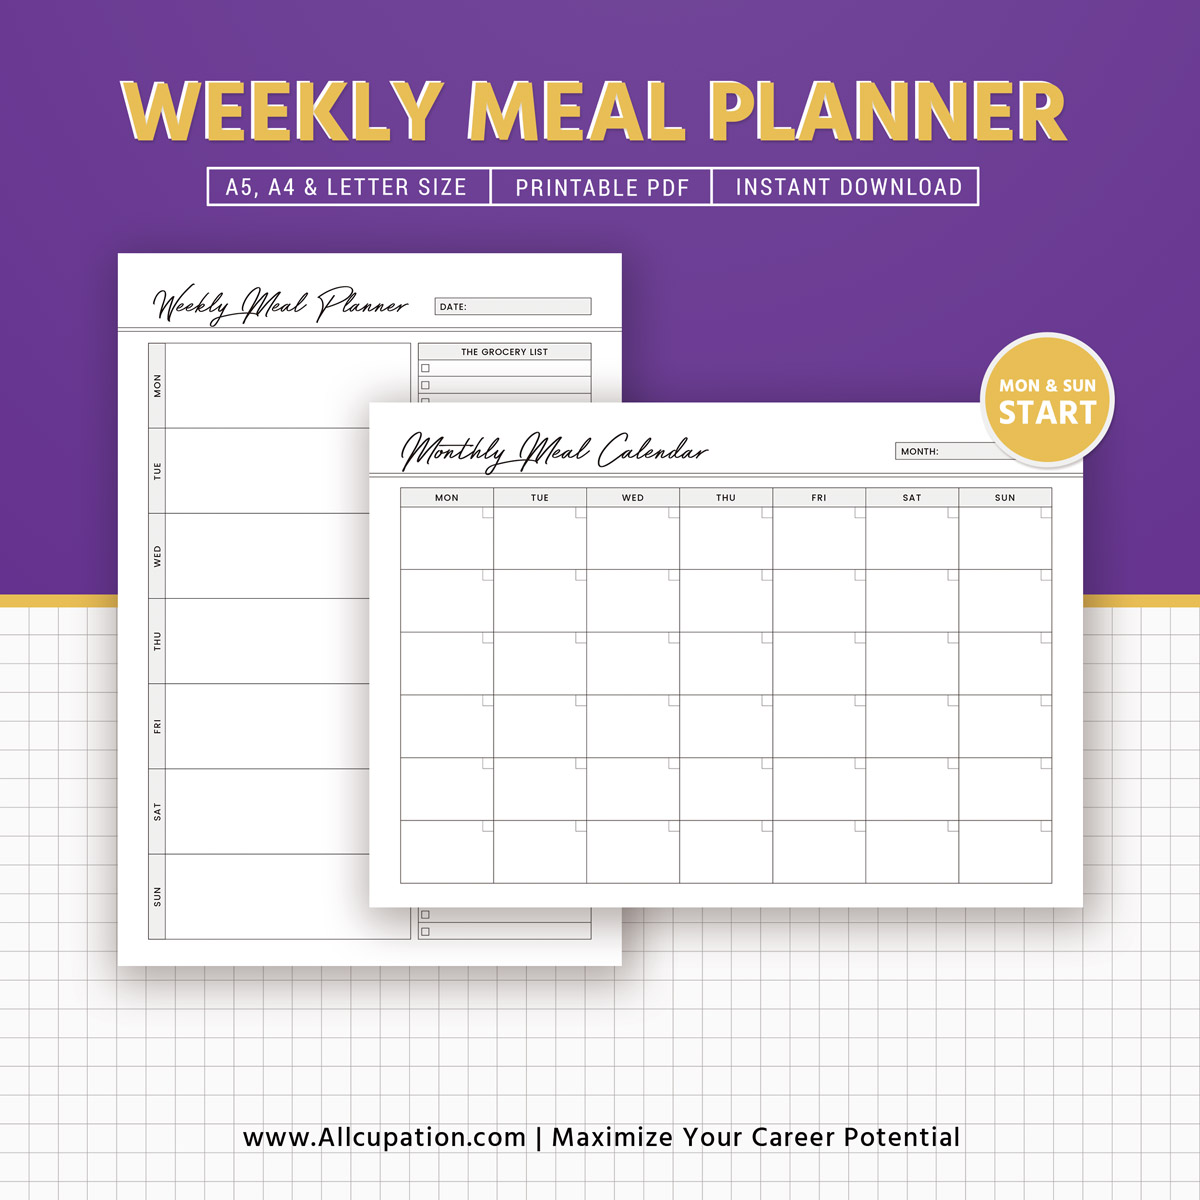 photo regarding Printable Meal Calendar identify Weekly Evening meal Planner Inserts, Menu Planner Printable, Evening meal Calendar, Planner Structure, Ideal Planner, A5 Planner Refills, A4, Letter, Immediate Obtain,